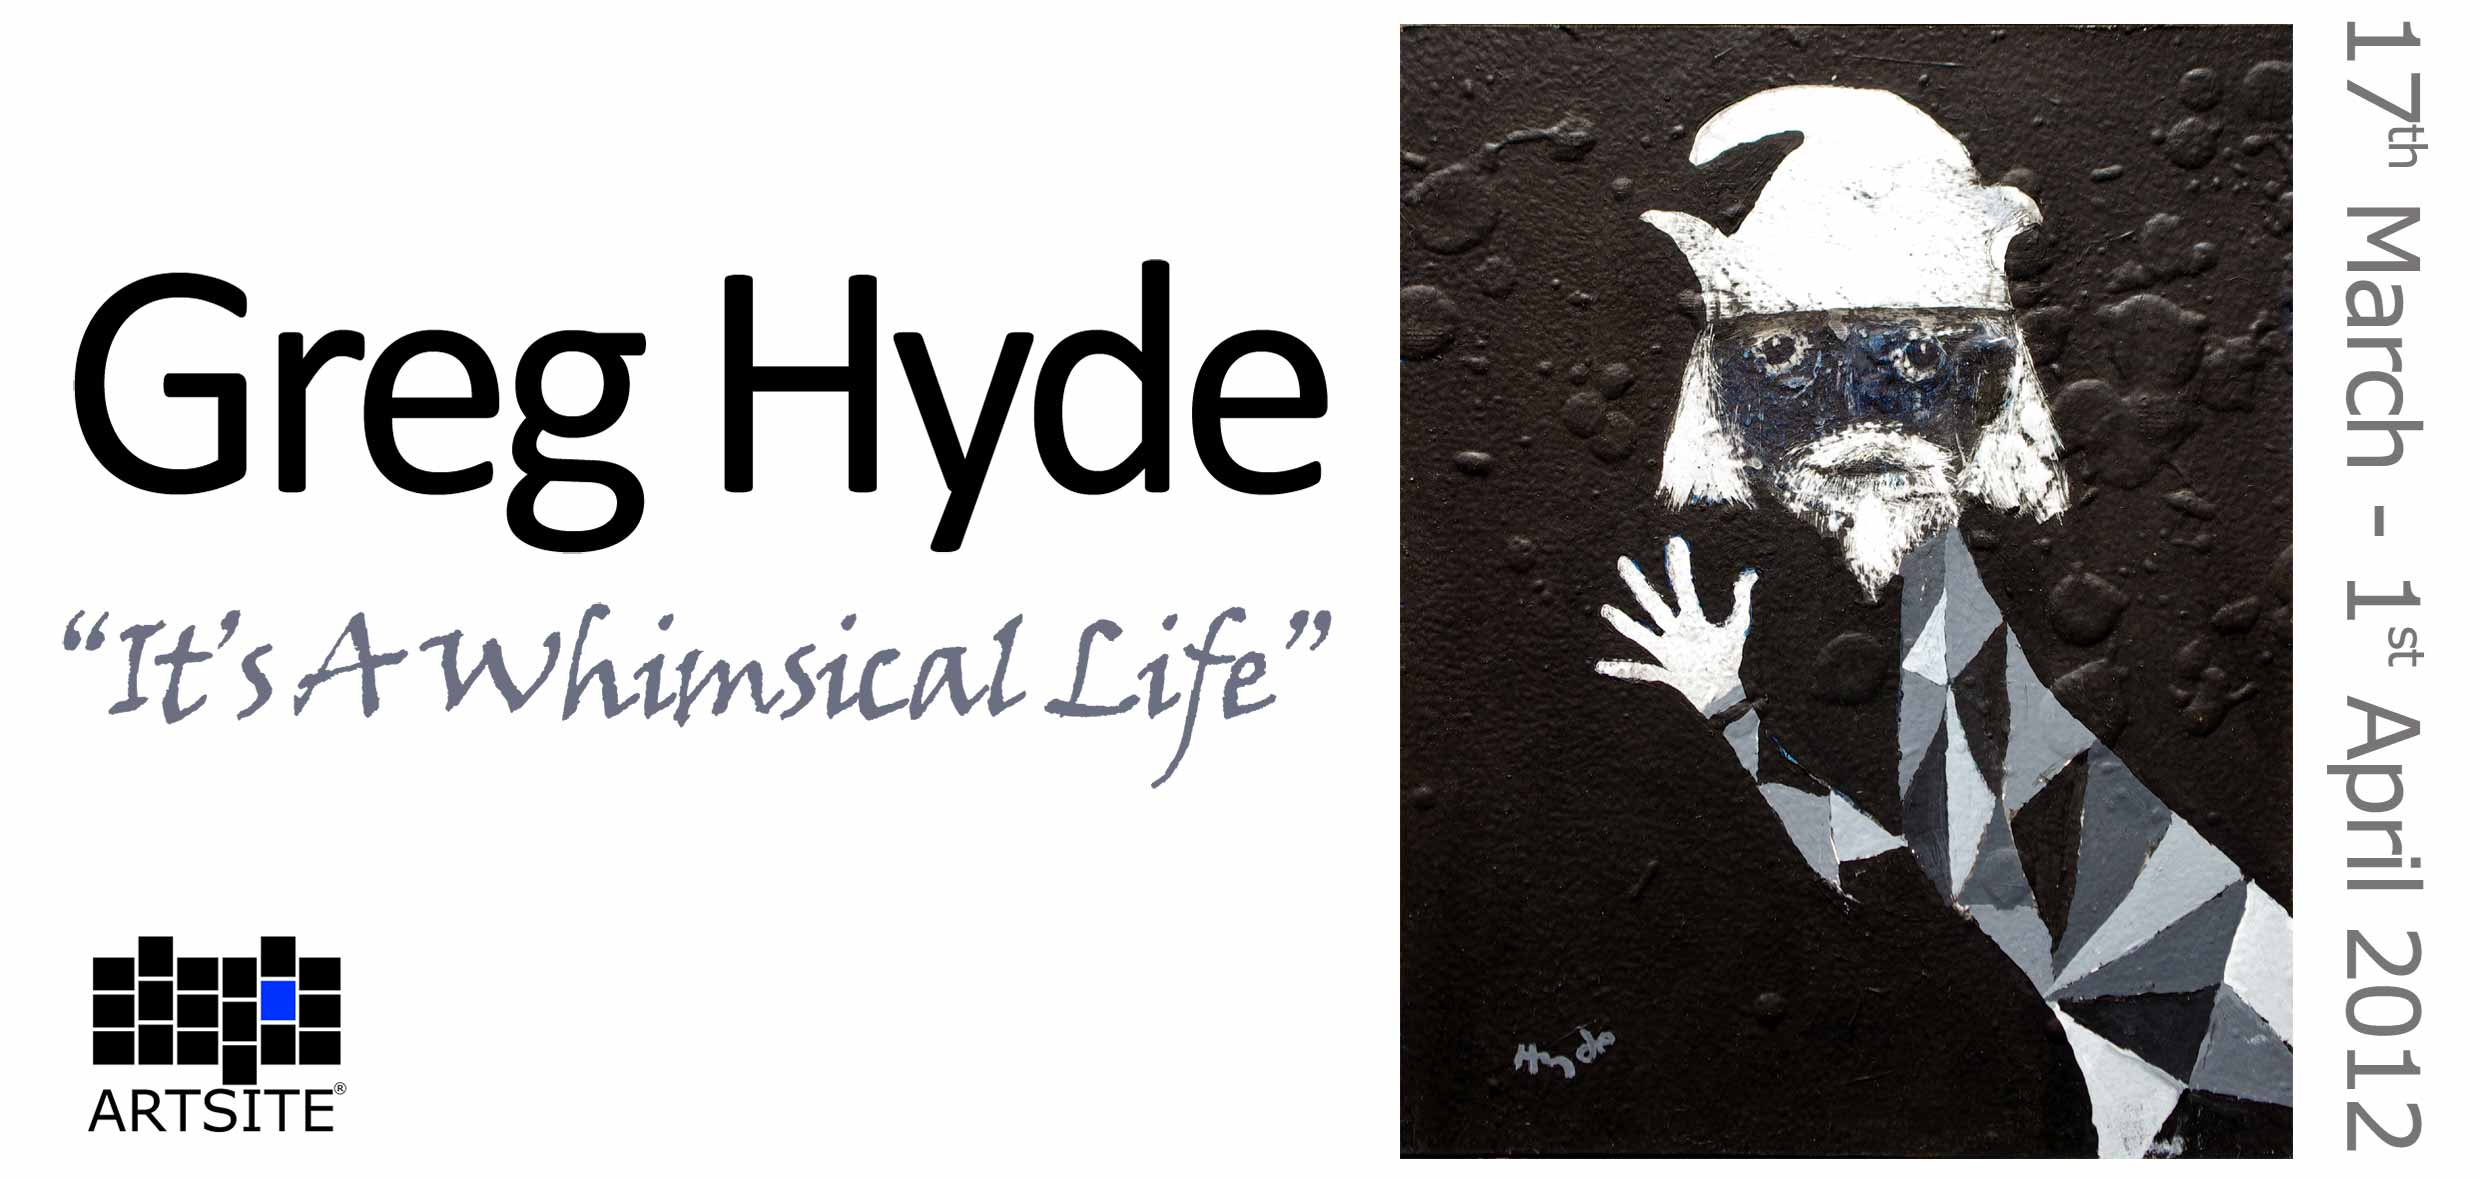 View Exhibition at Artsite Gallery17 March - 01 April 2012: Greg Hyde ~ It's a Whimsical Life.